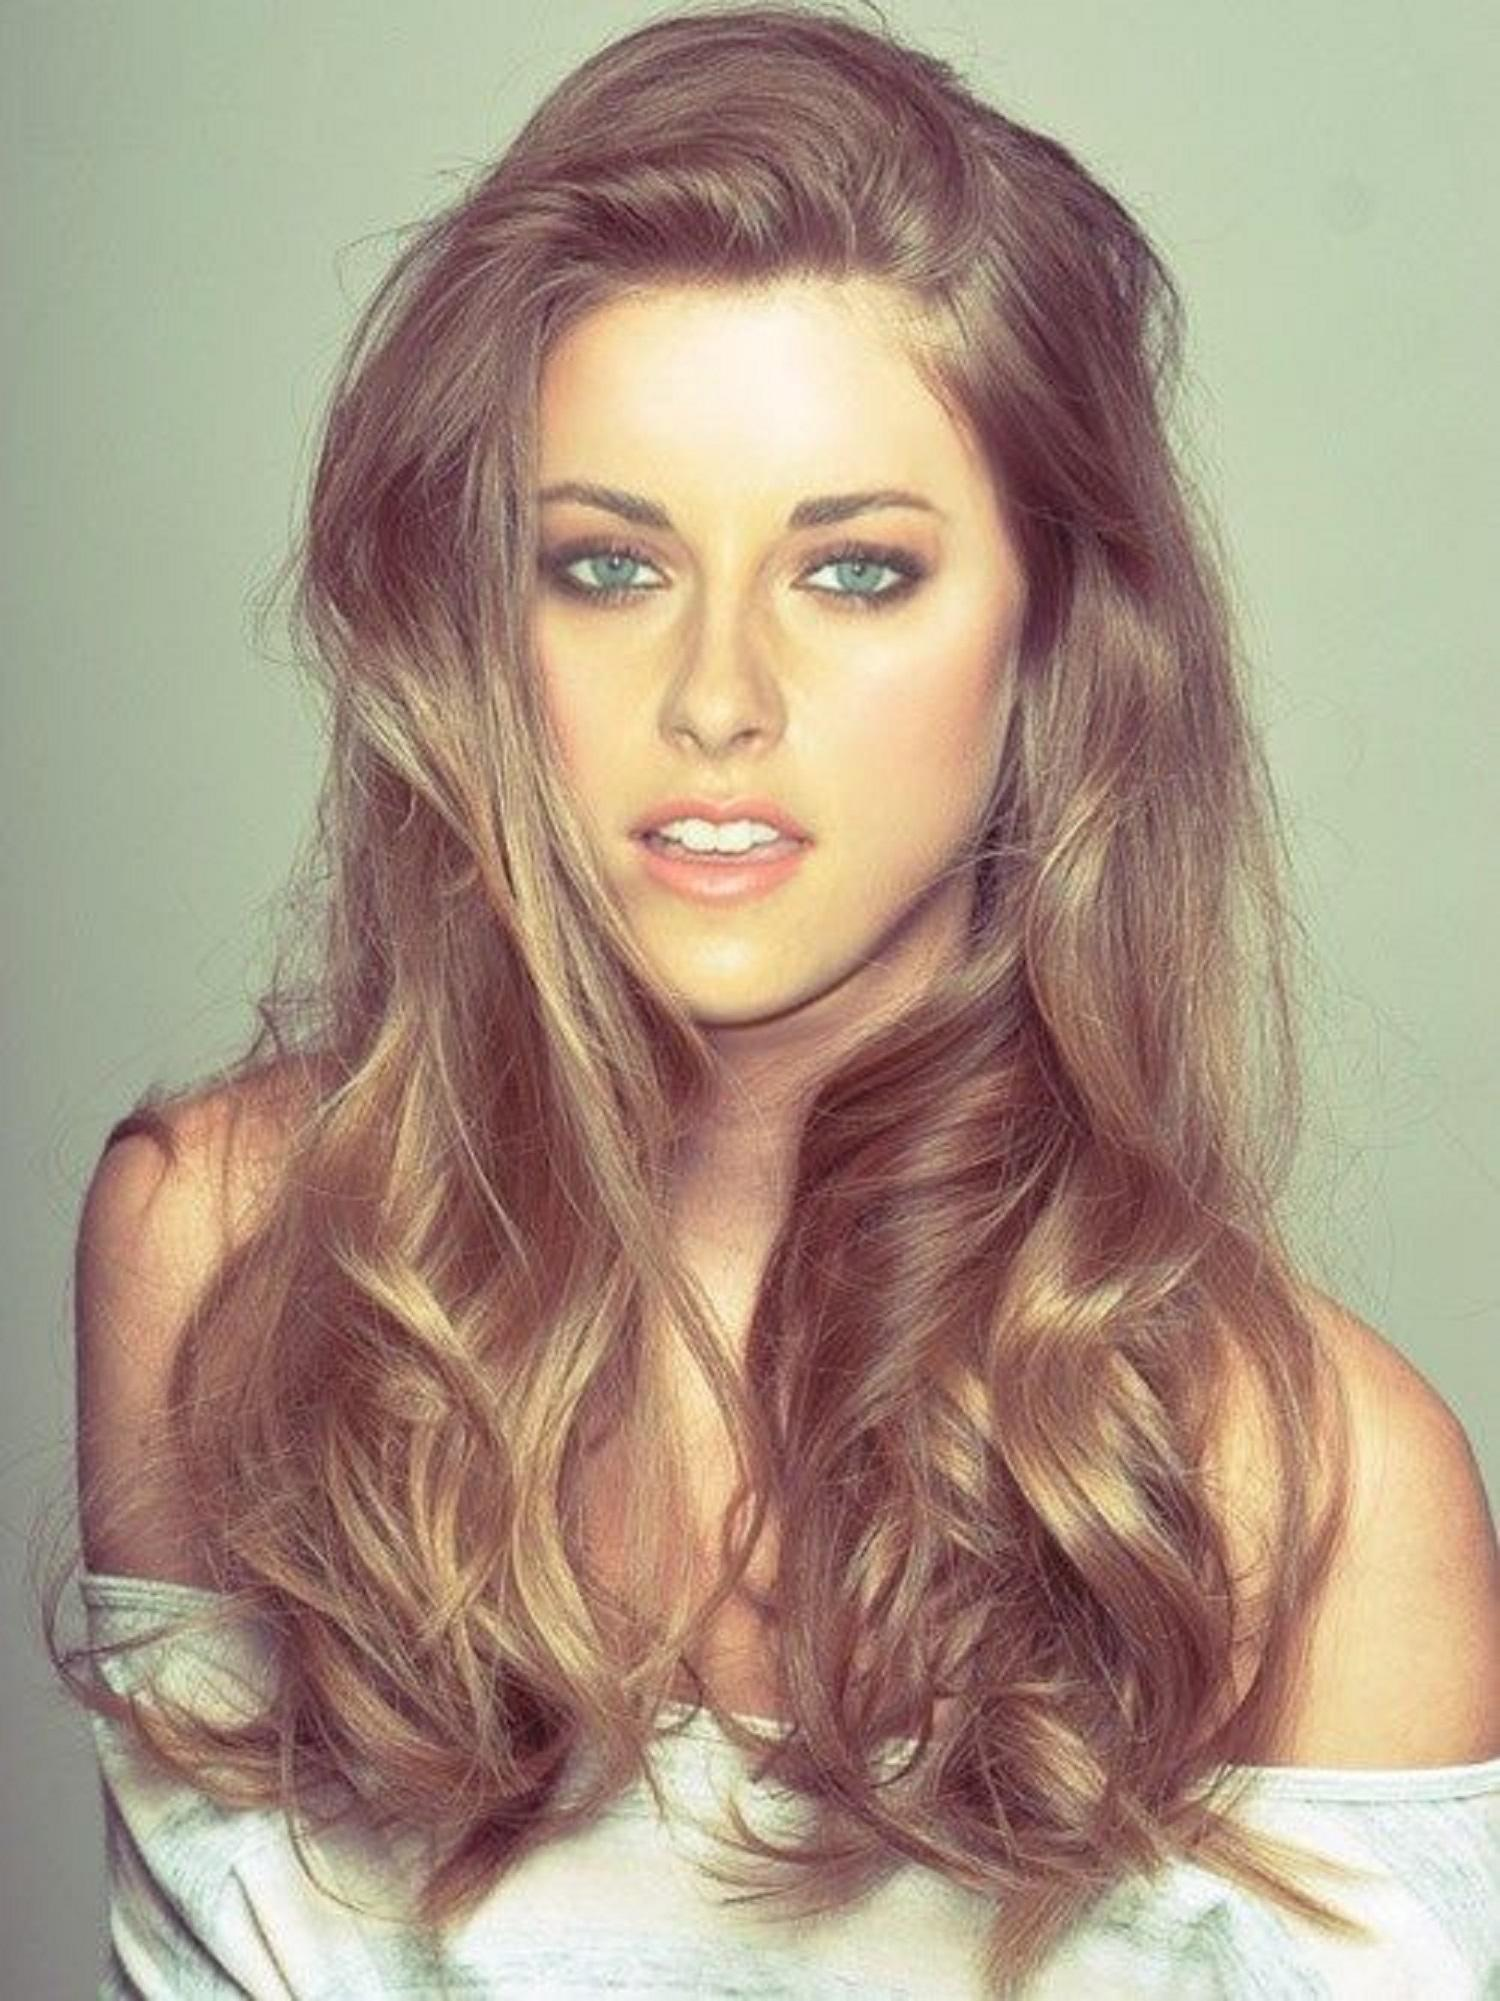 http://www.laughspark.info/uploadfiles/most-beautiful-pic-of-kristen--4214.jpg